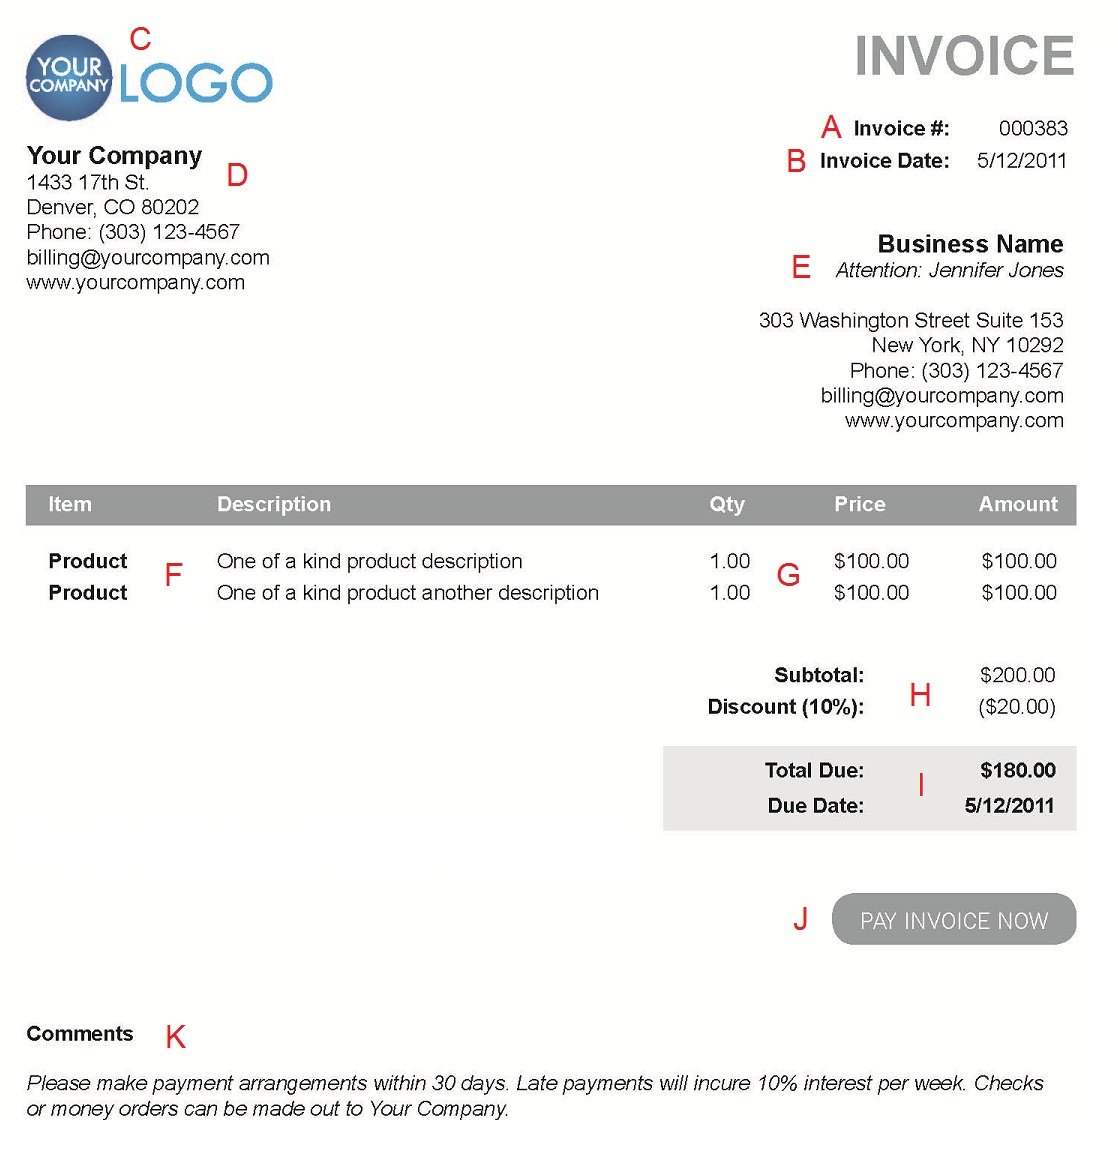 Proatmealus  Remarkable The  Different Sections Of An Electronic Payment Invoice With Glamorous A  With Amazing Receipt Printing Machine Also Kindly Confirm Receipt In Addition Alternative To Neat Receipts And Toys R Us Return Policy With Receipt As Well As Sample Of Receipt For Payment Additionally Receipt Booklets From Paysimplecom With Proatmealus  Glamorous The  Different Sections Of An Electronic Payment Invoice With Amazing A  And Remarkable Receipt Printing Machine Also Kindly Confirm Receipt In Addition Alternative To Neat Receipts From Paysimplecom